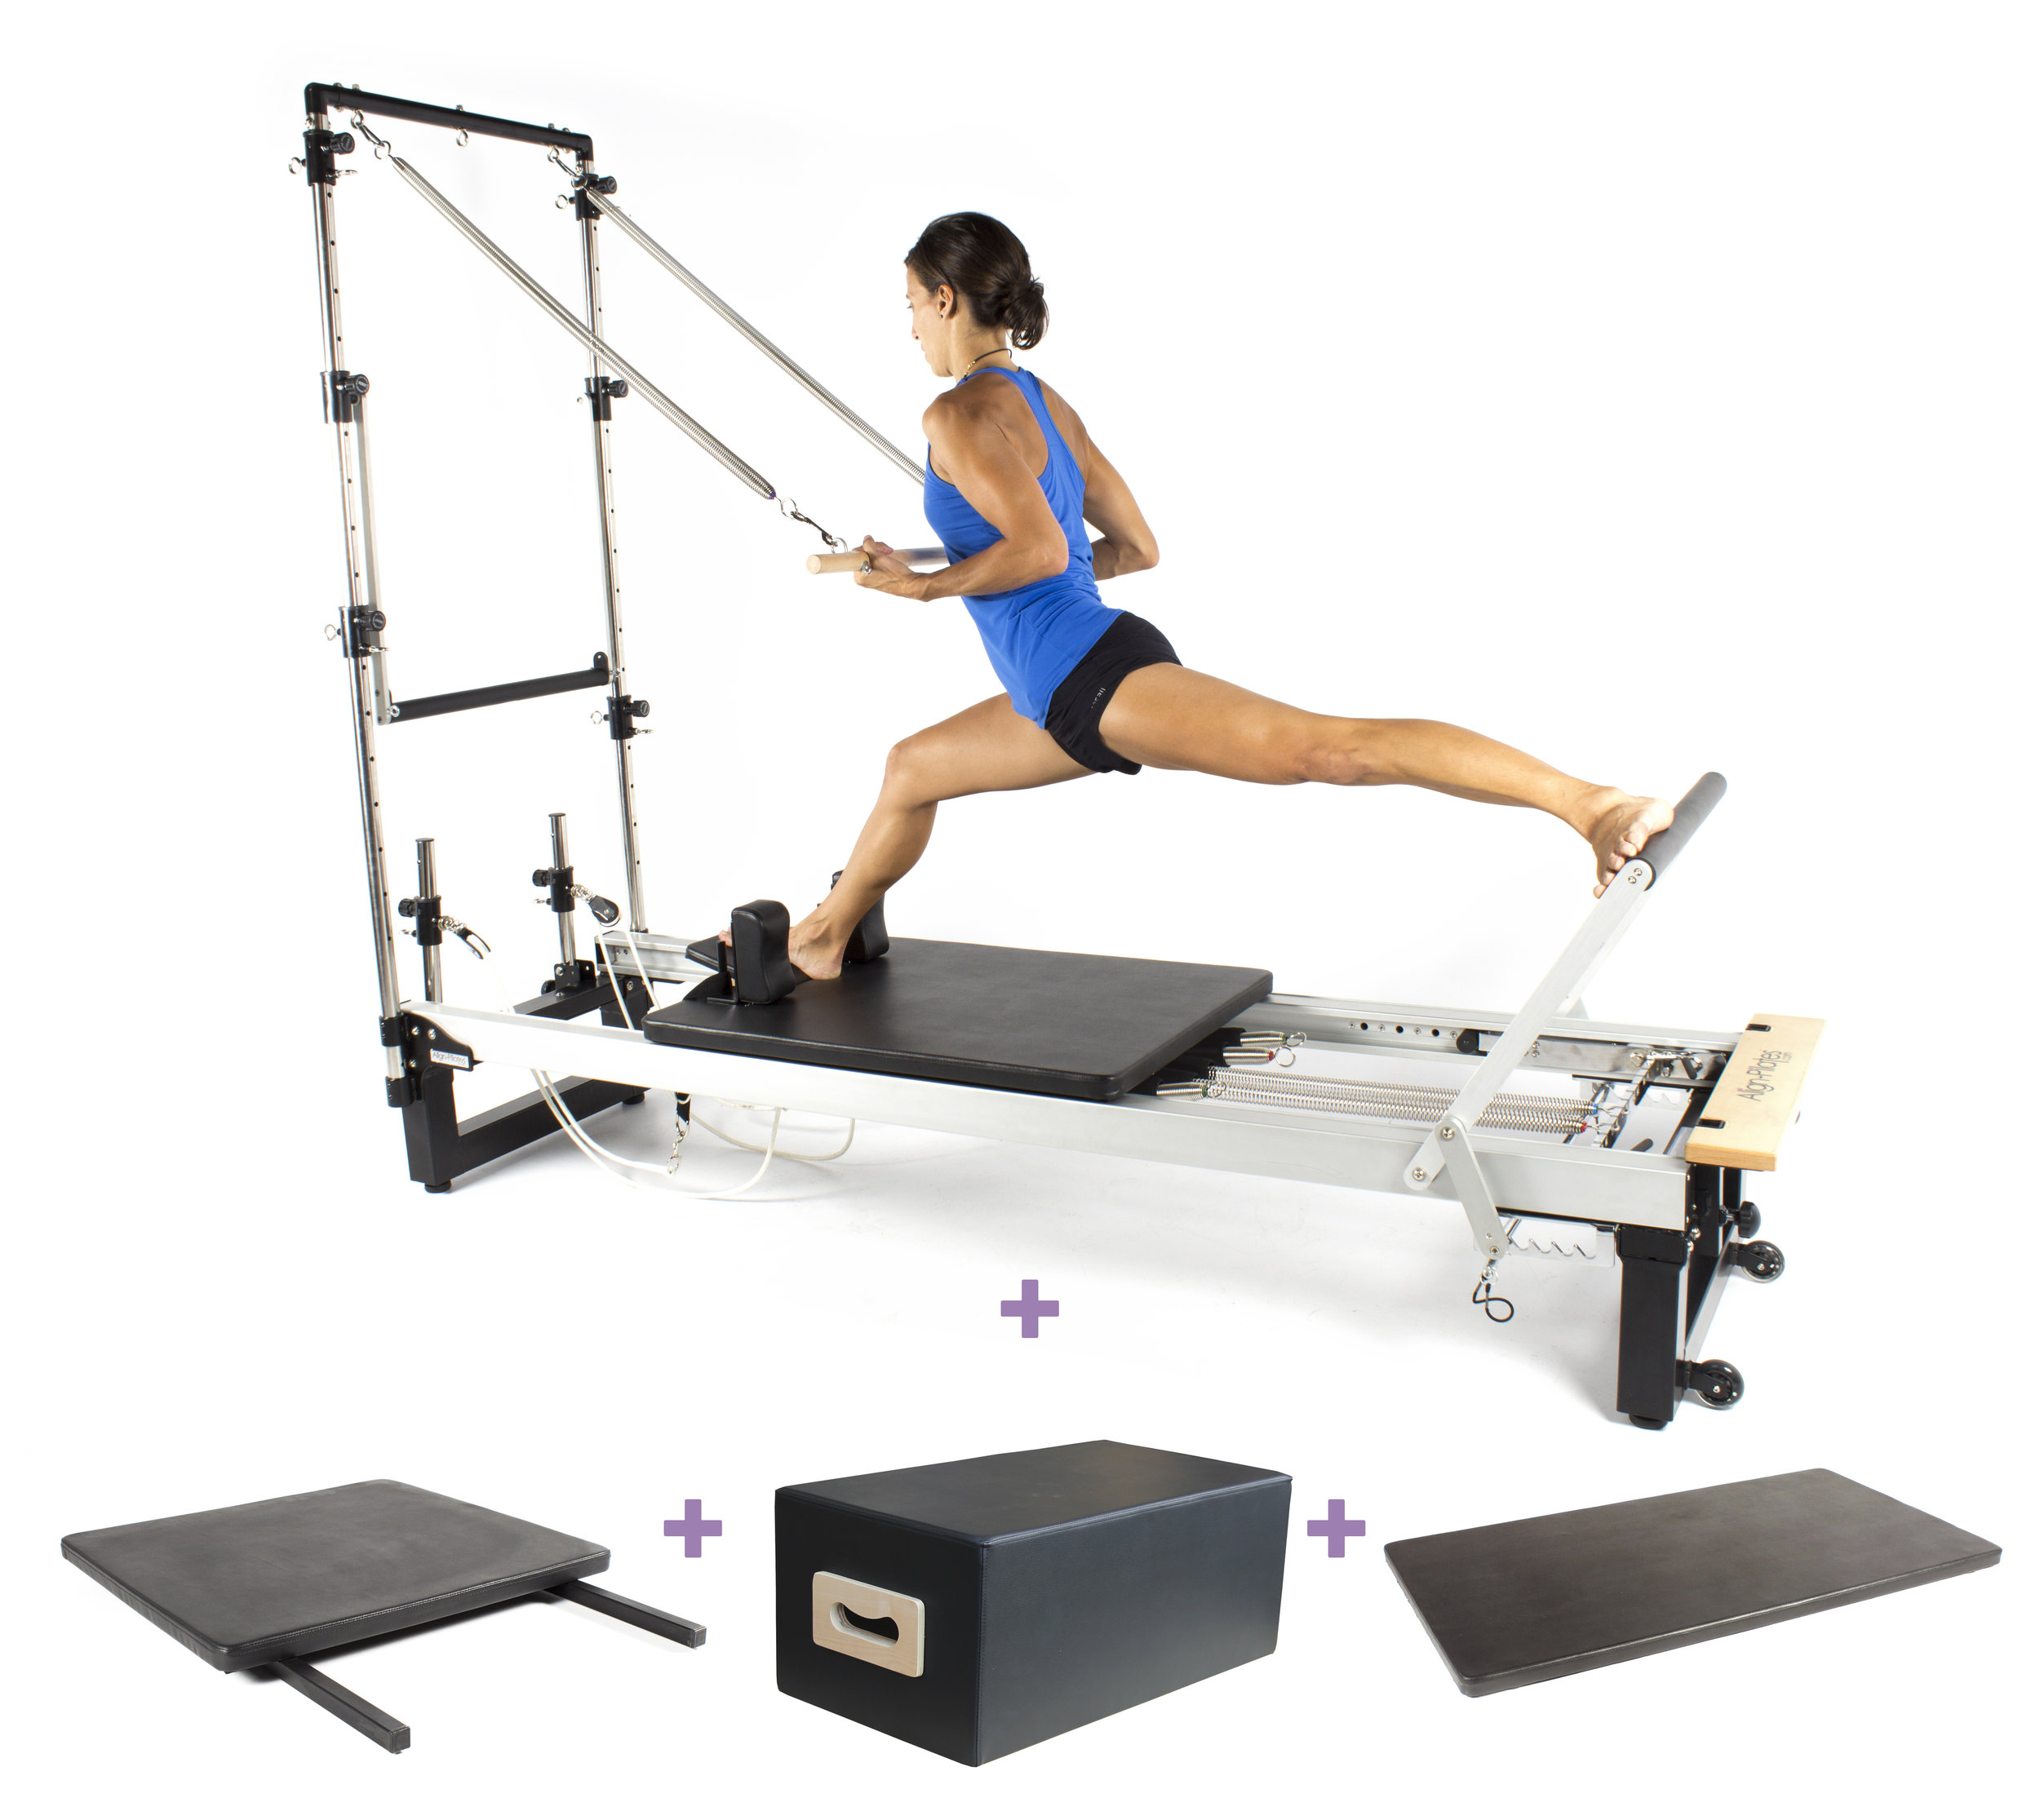 Align A2R2 studio pilates reformer with half trap and bundle options